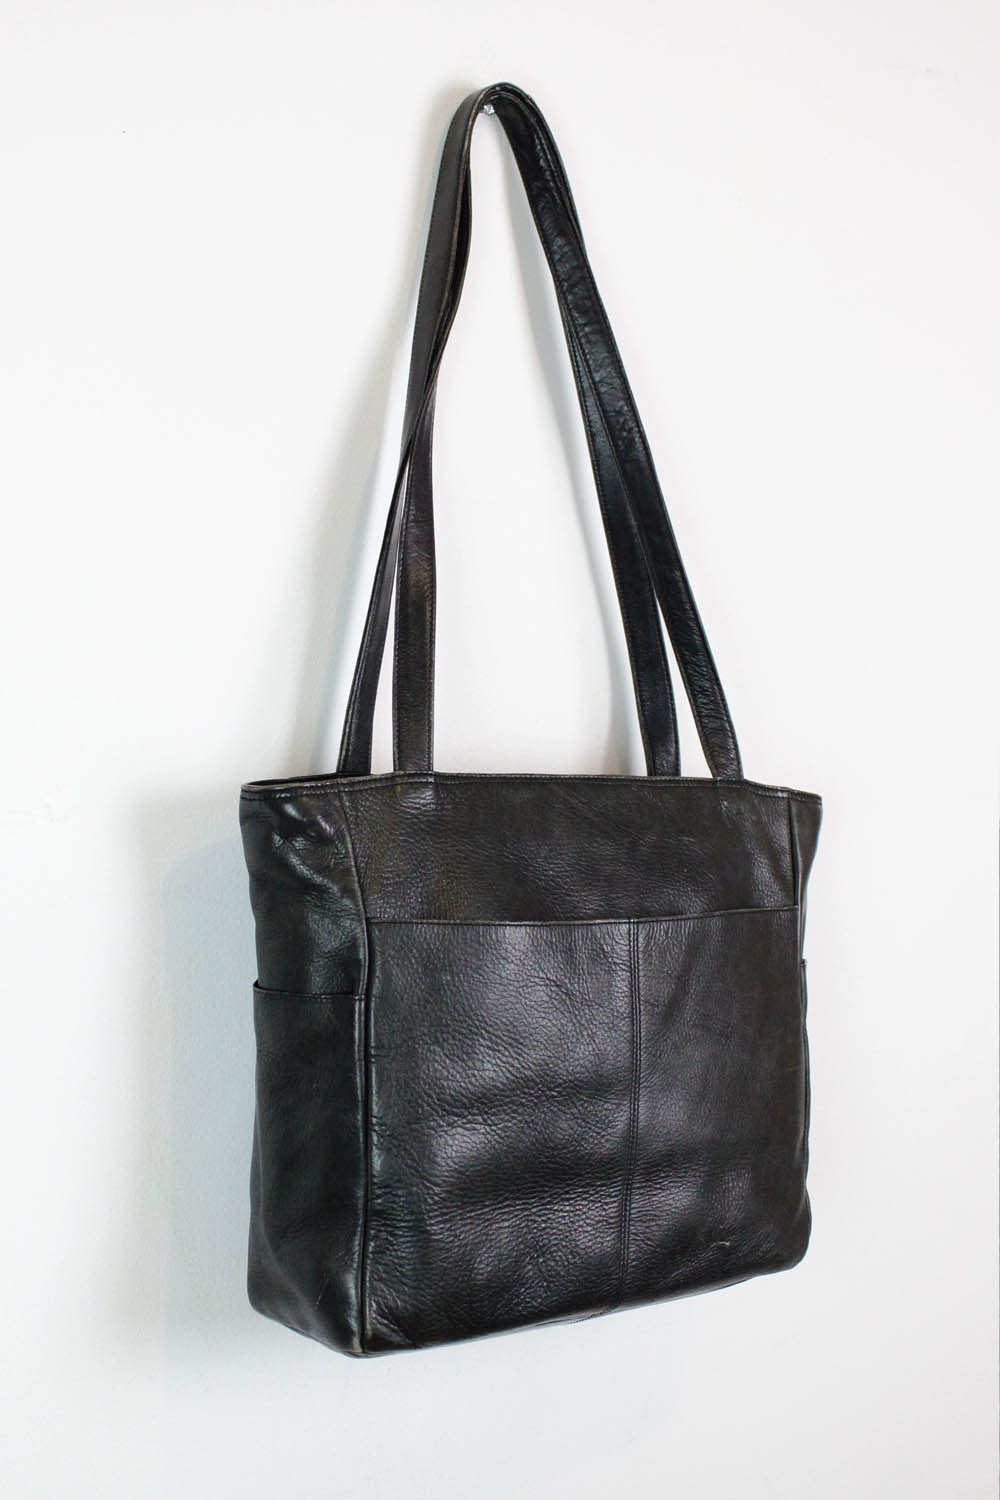 Basic Black Leather Tote